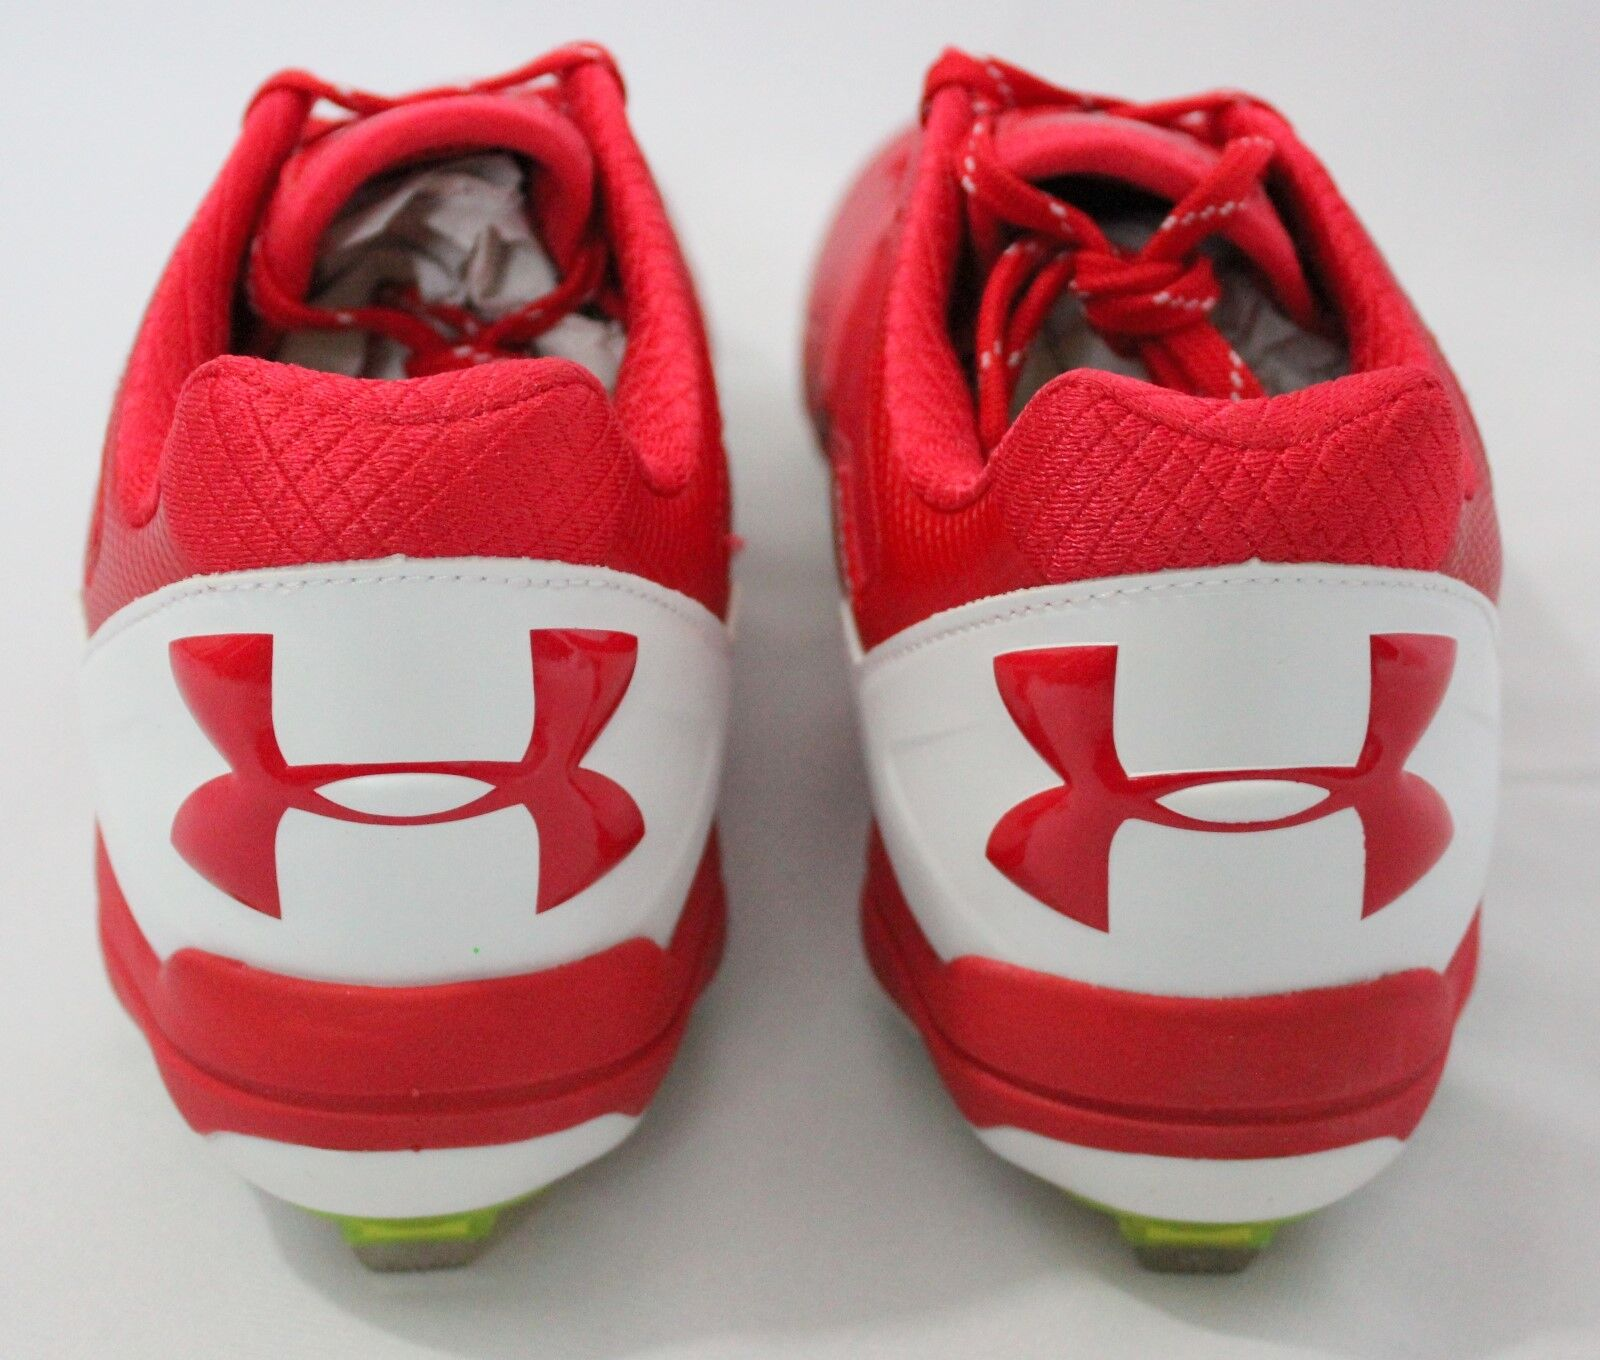 buy popular f878f 08abc ... Under Armour Mens Deception Low DiamondTips Baseball Cleat Red White  Red White Red  ...